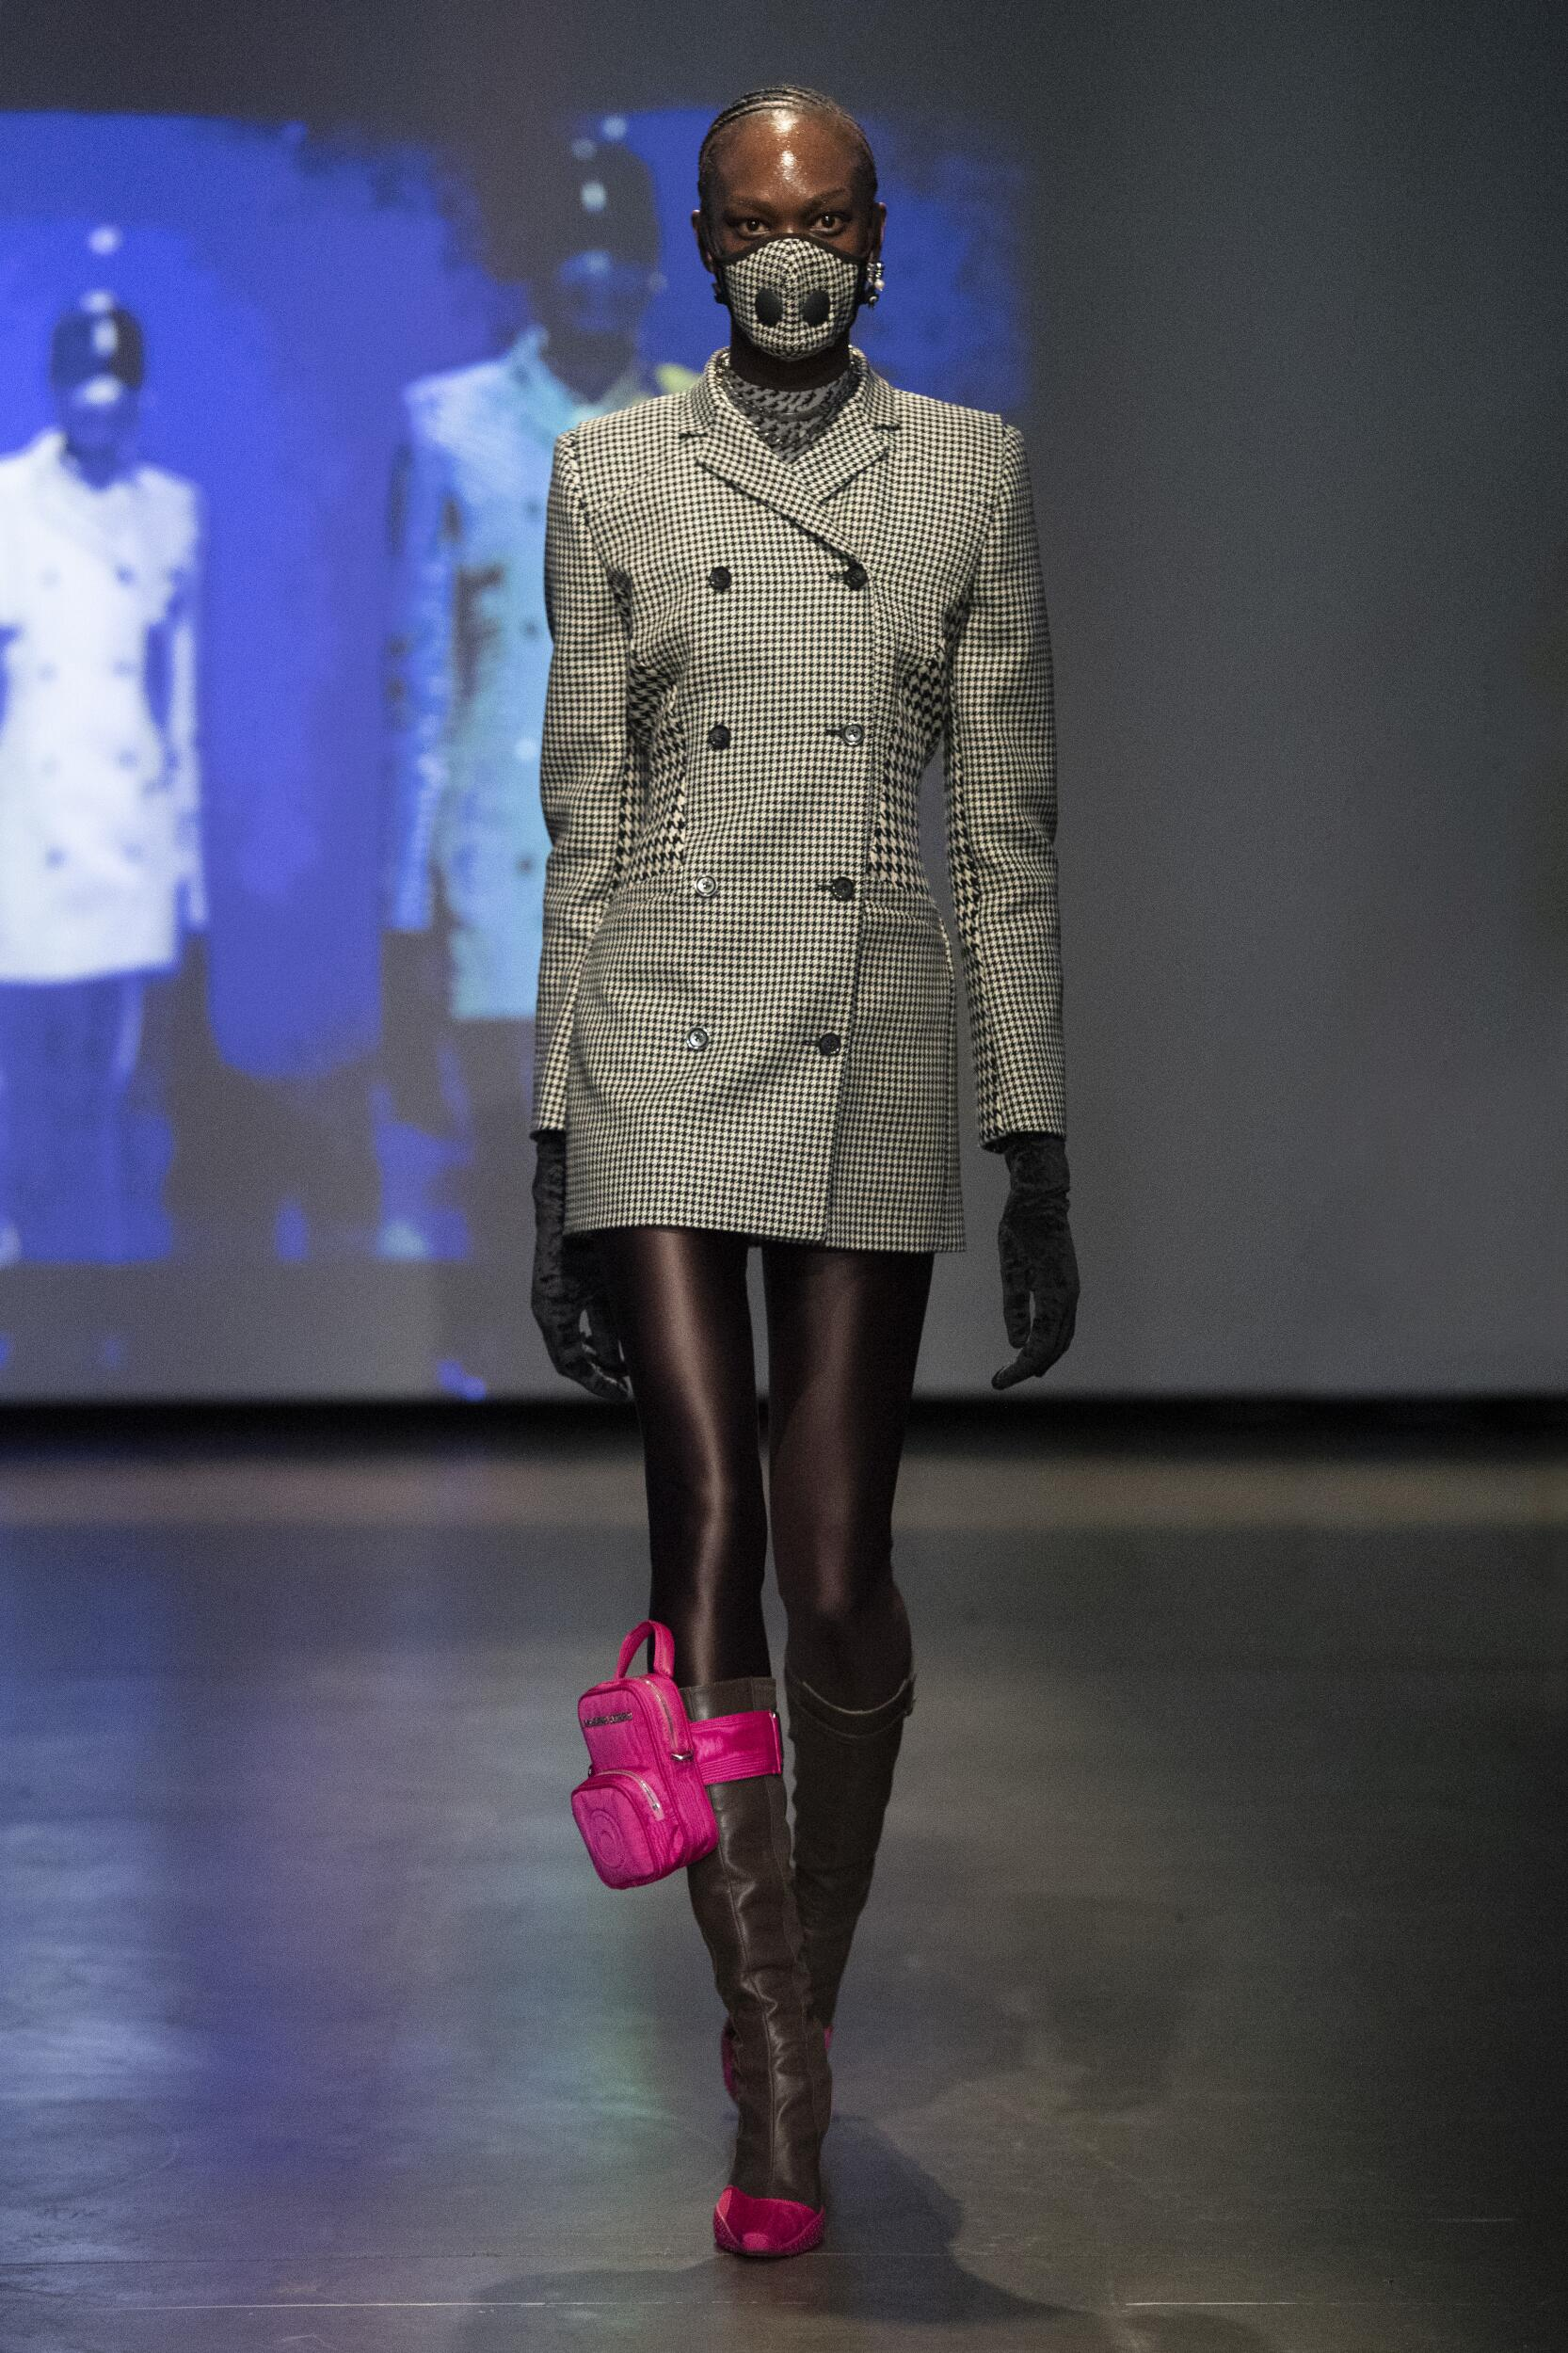 Marine Serre Fall Winter 2020 Womens Collection Paris Fashion Week